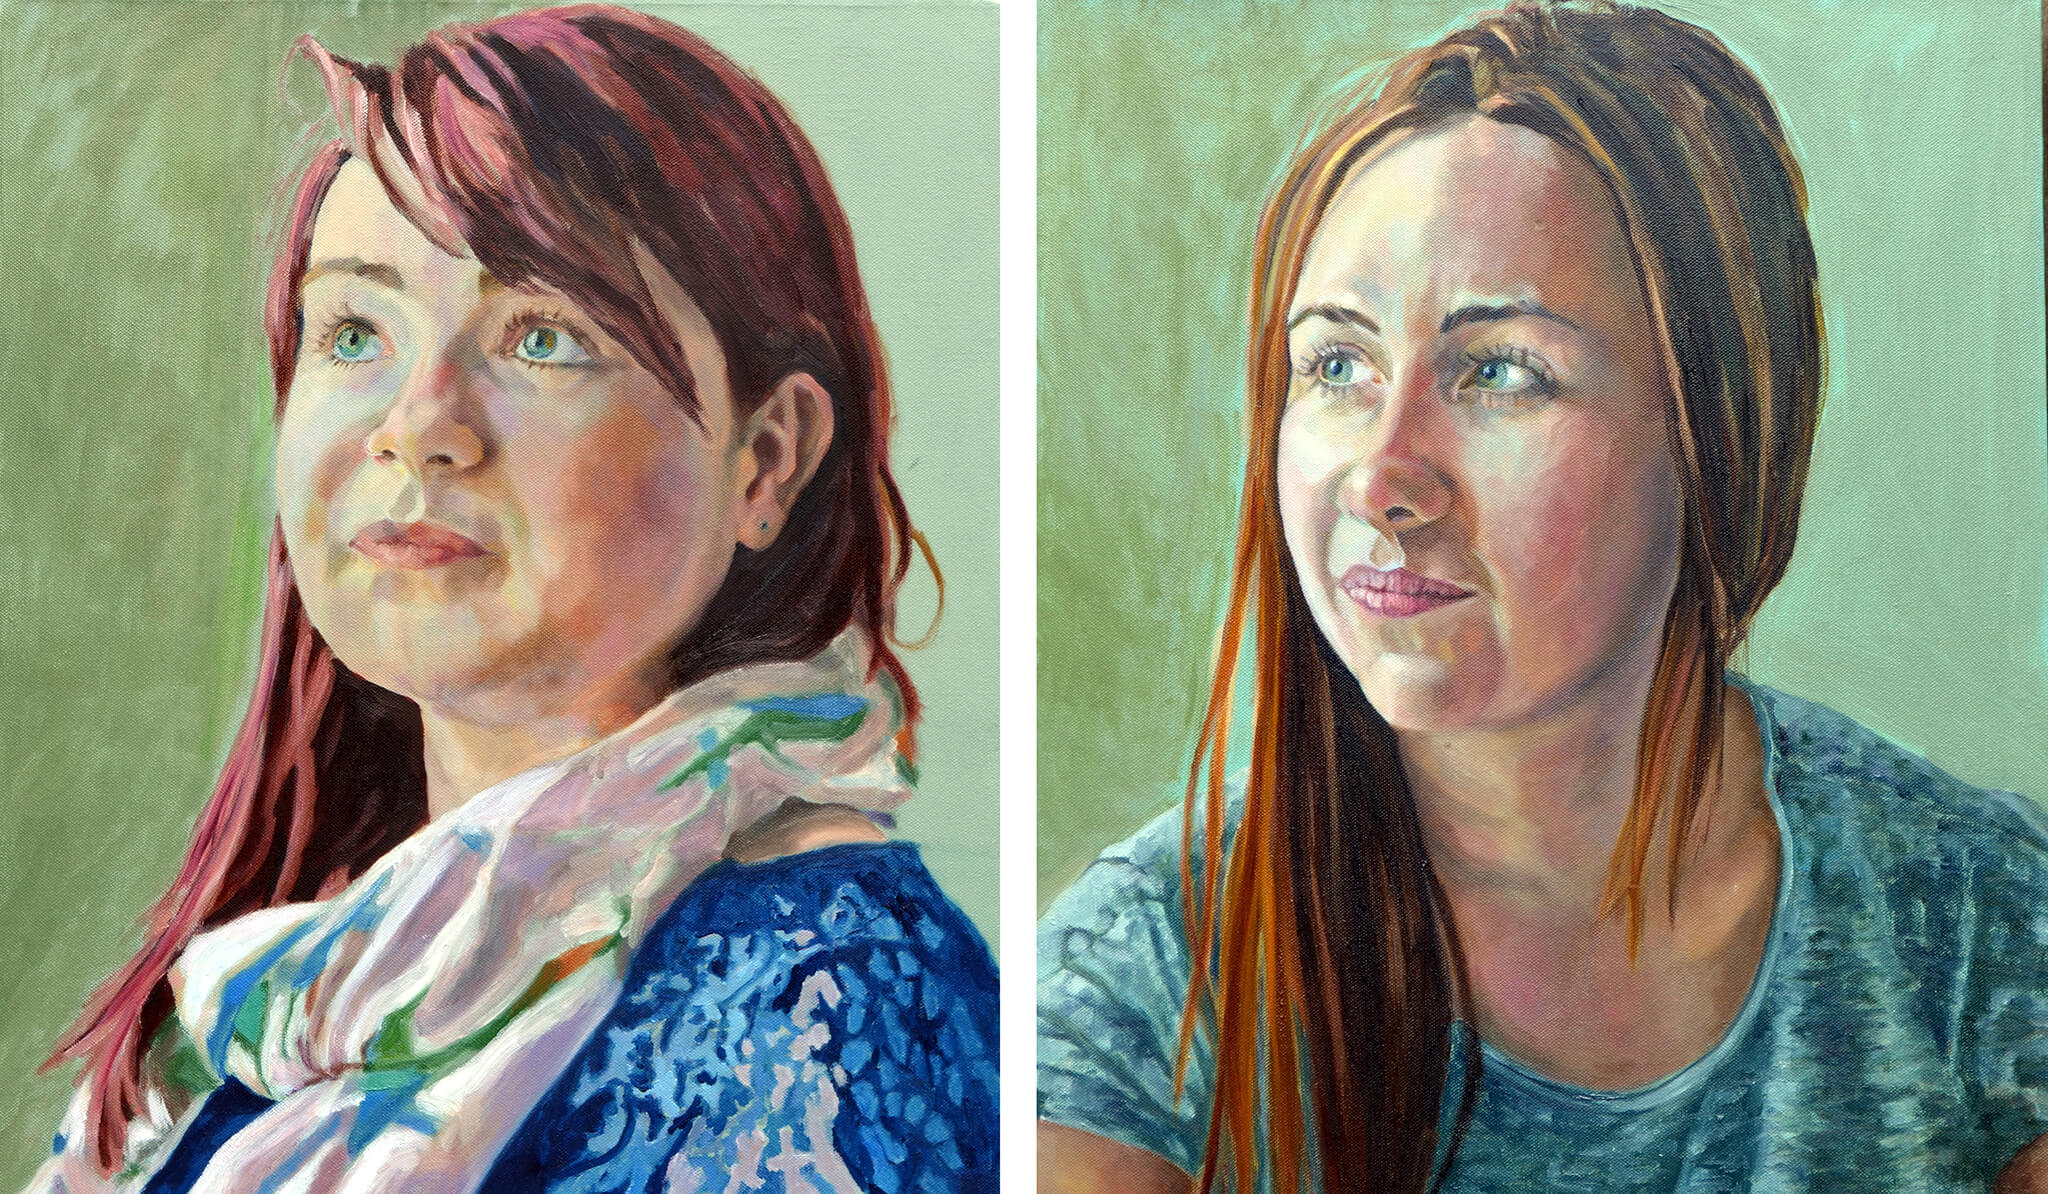 Florence and Phoebe Gibson portraits in oils on canvas artworks by Stella Tooth.